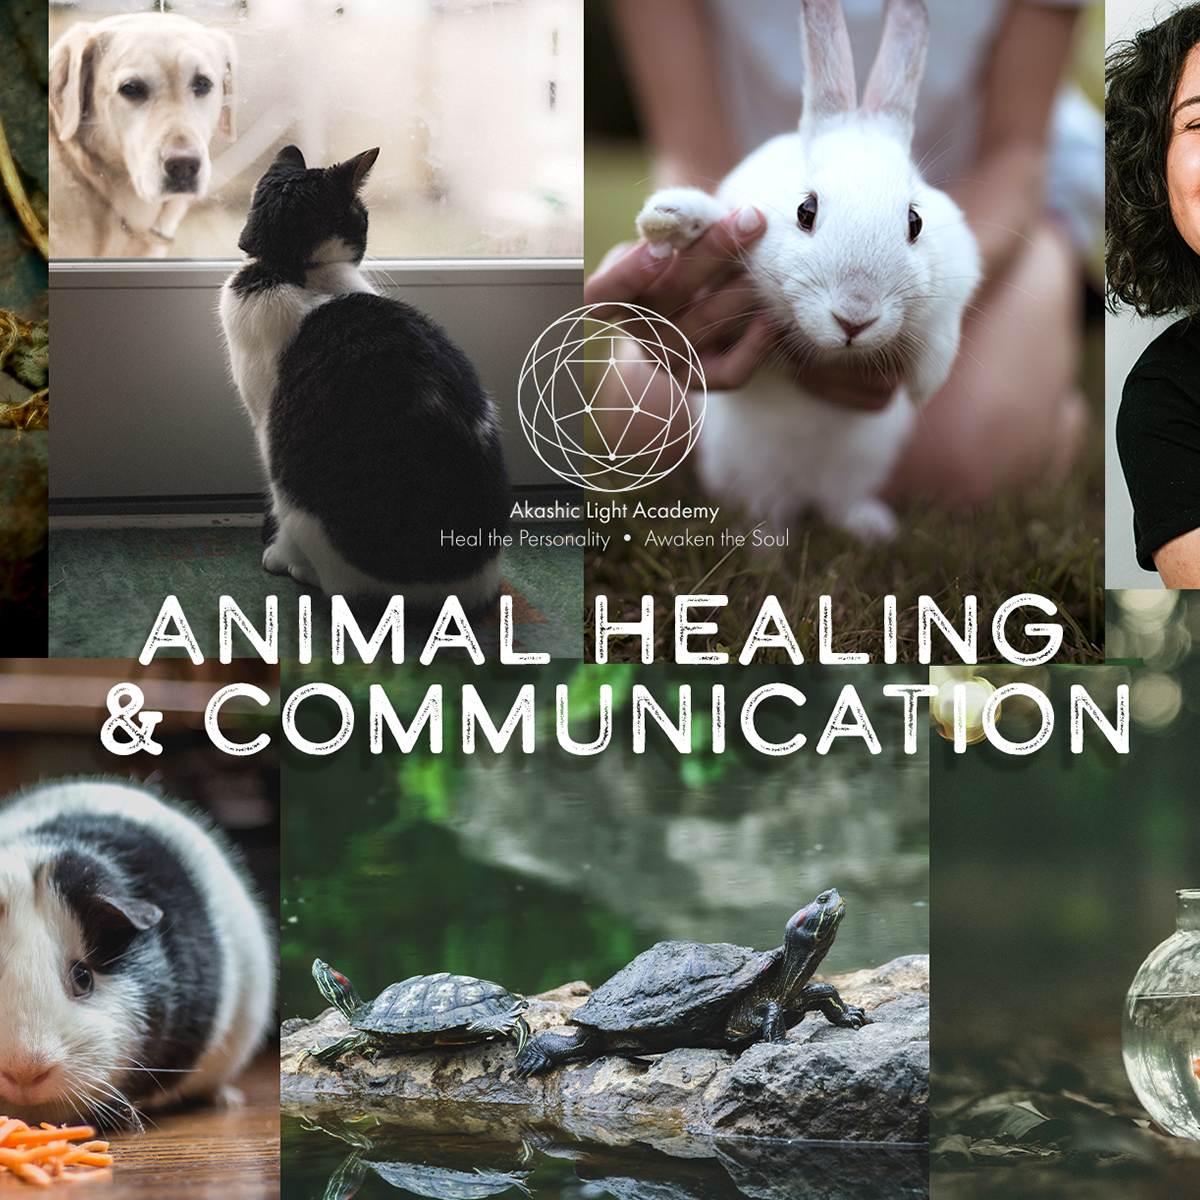 Animal Healing & Communication